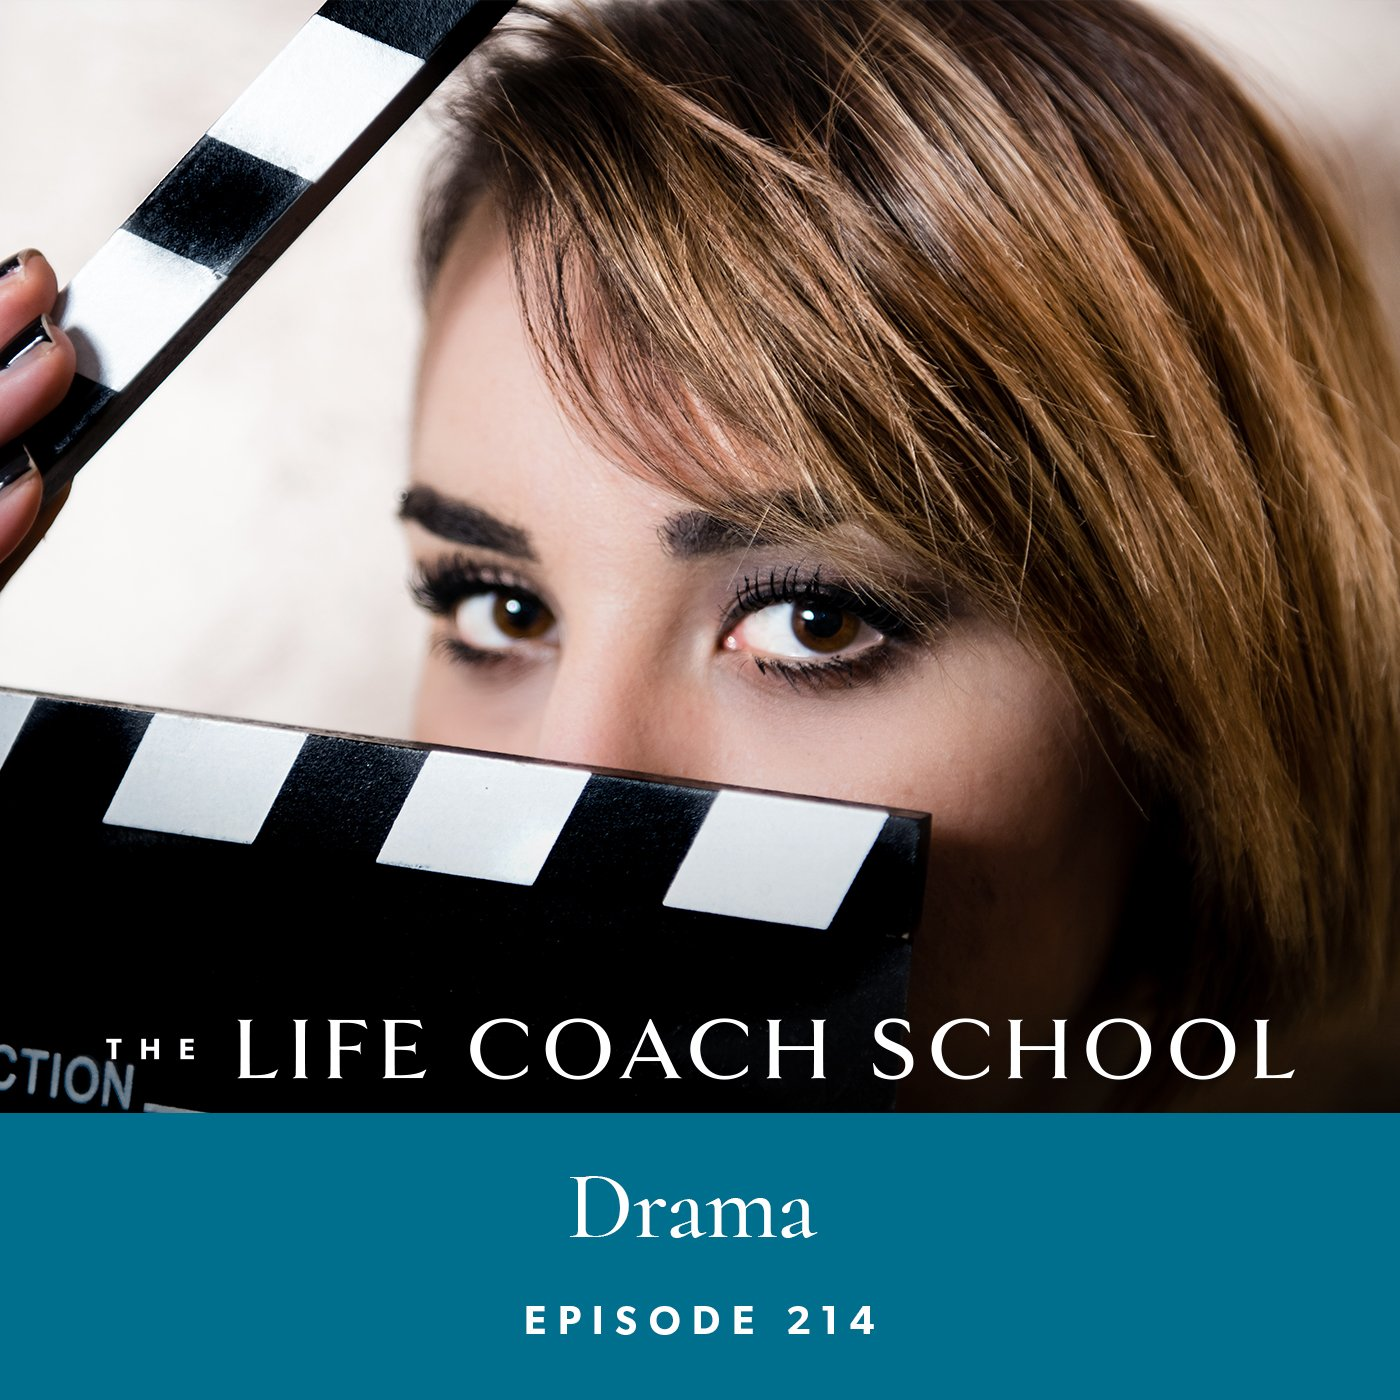 The Life Coach School Podcast with Brooke Castillo | Episode 214 | Drama